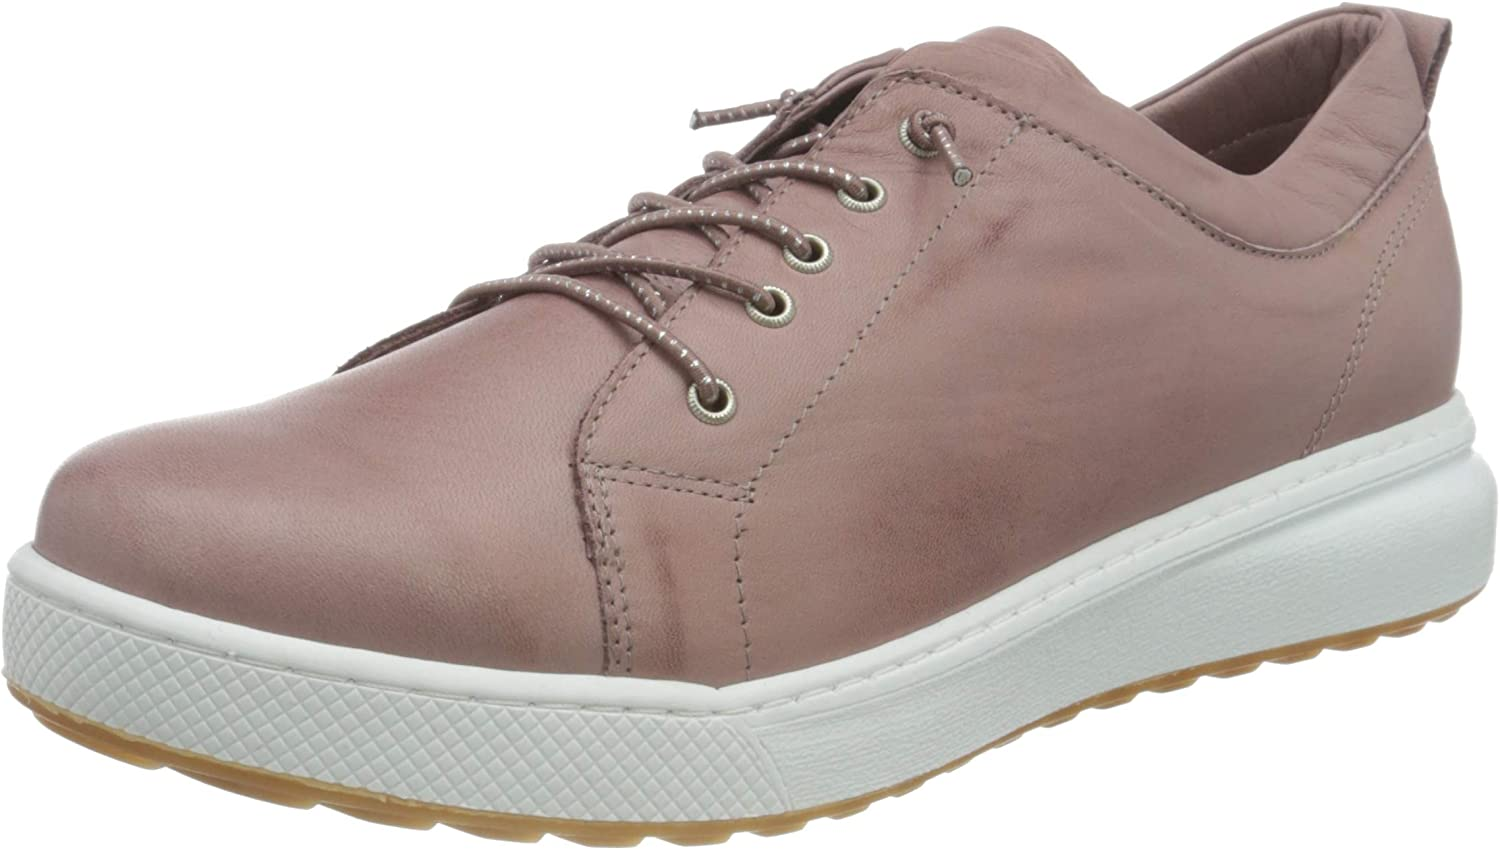 Sale SALE% Cheap mail order shopping OFF Andrea Conti Women's Low-Top Sneakers